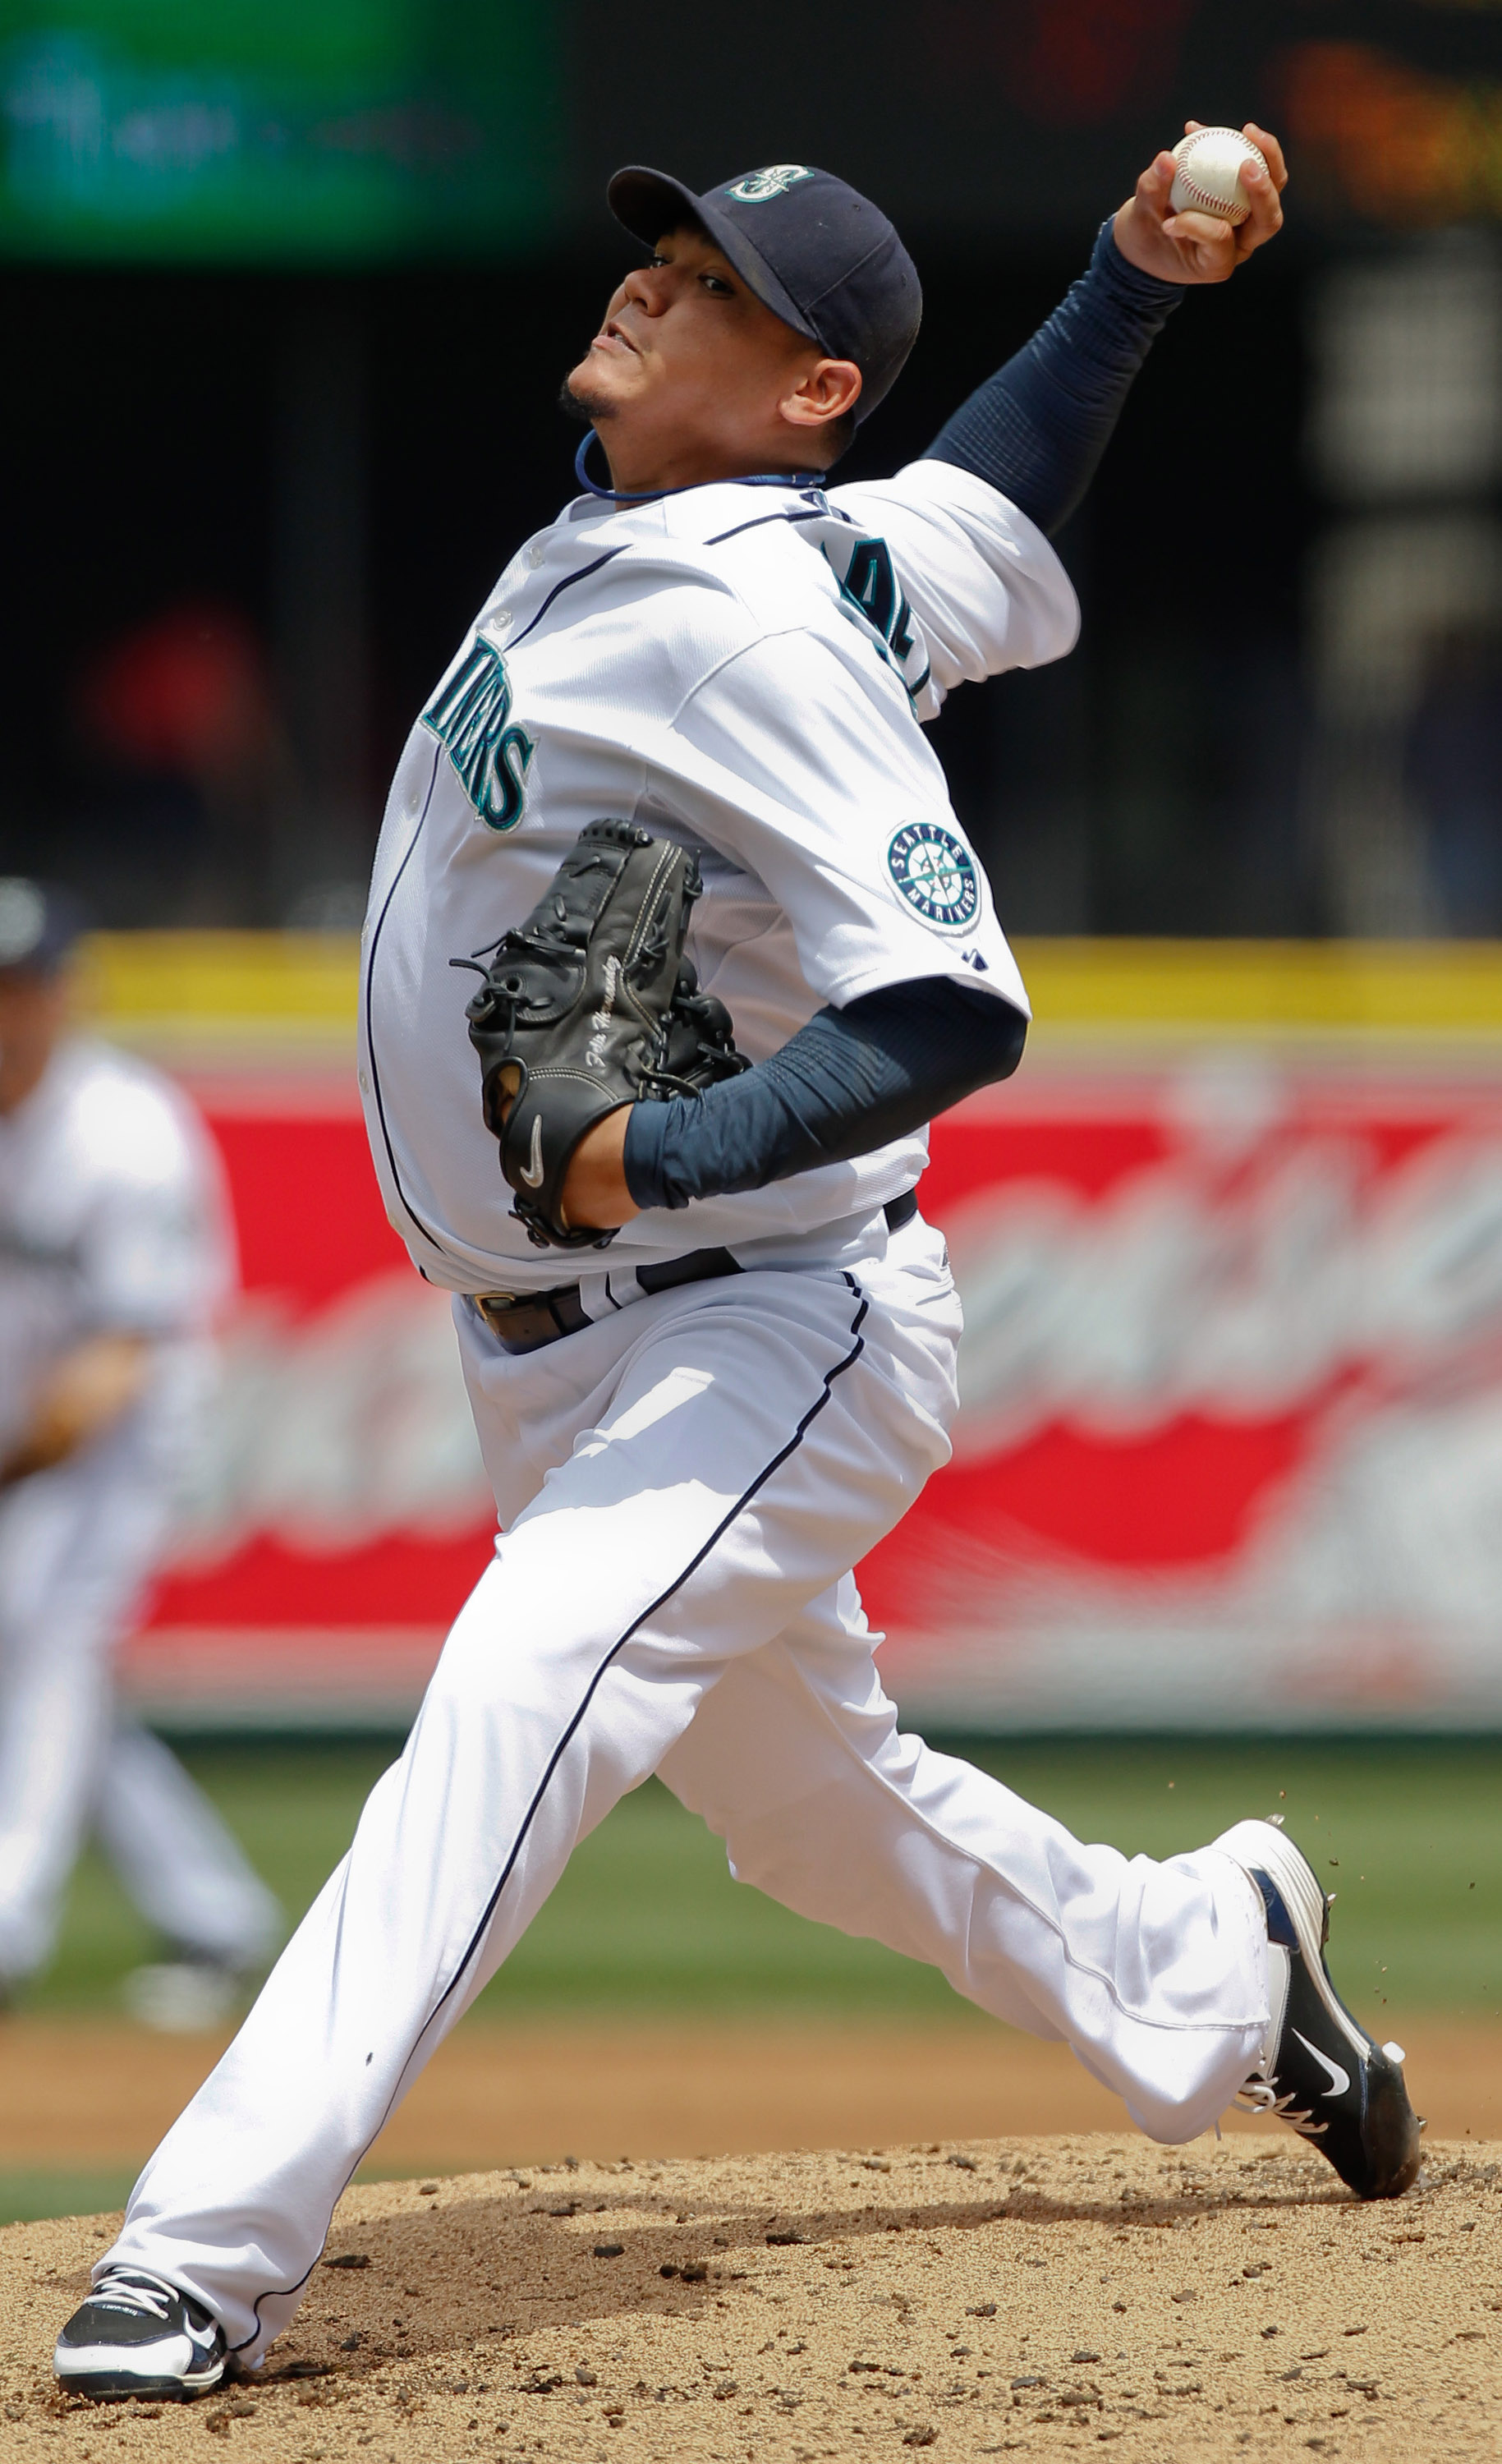 SEATTLE - JUNE 24: Starting pitcher Felix Hernandez #34 of the Seattle Mariners pitches against the Chicago Cubs at Safeco Field on June 24, 2010 in Seattle, Washington. (Photo by Otto Greule Jr/Getty Images)